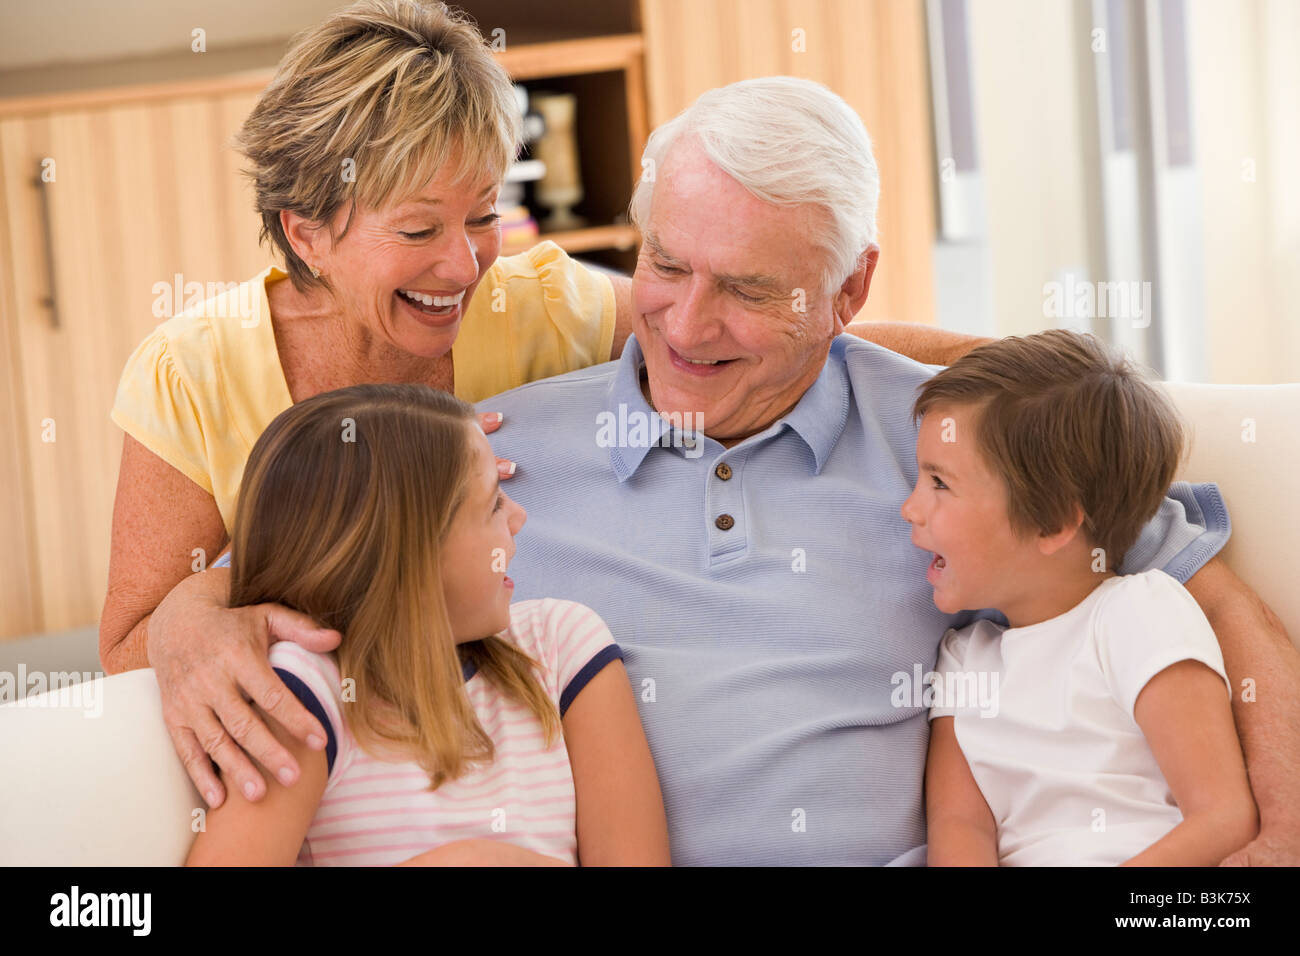 Grandparents laughing with grandchildren. - Stock Image